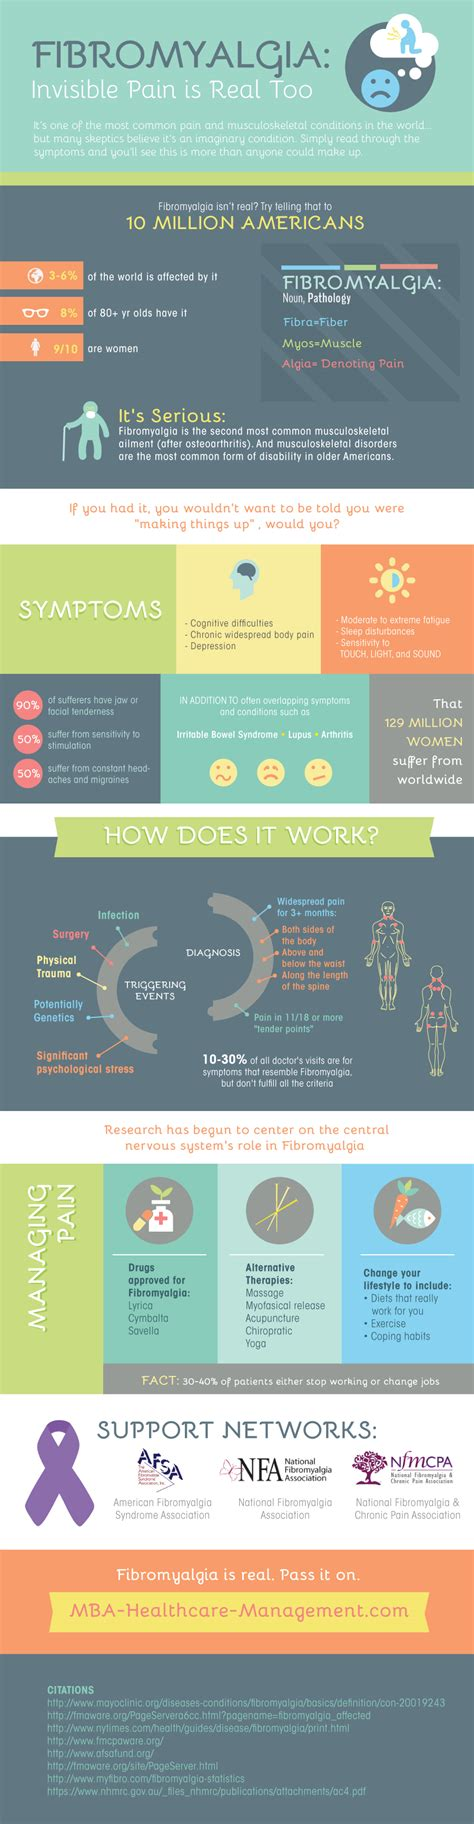 Mba Healthcare Administration Colorado by The Real Of Fibromyalgia An Infographic